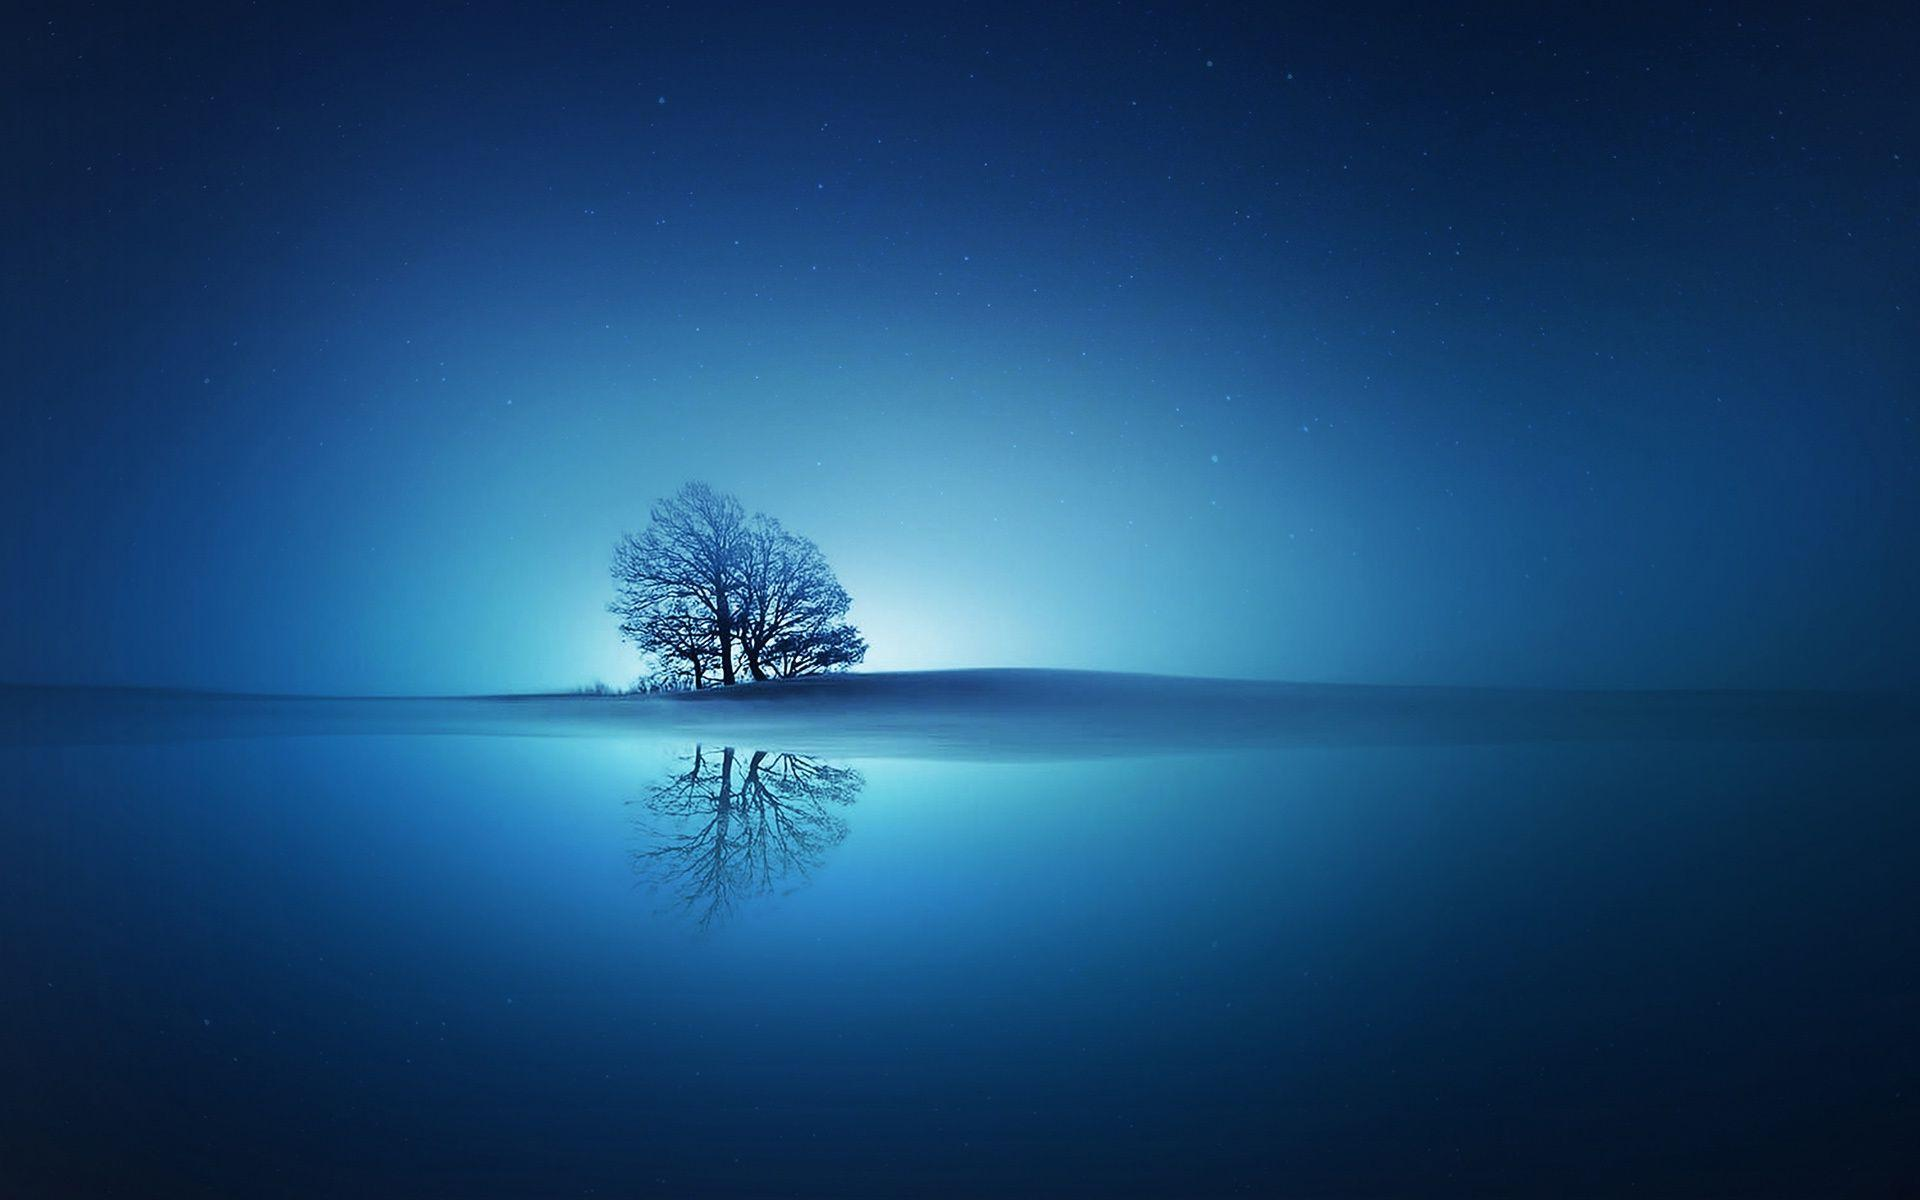 Good Morning Wallpaper Cute Hd Tree In The Blue Sunset Wallpaper Download Free 148983